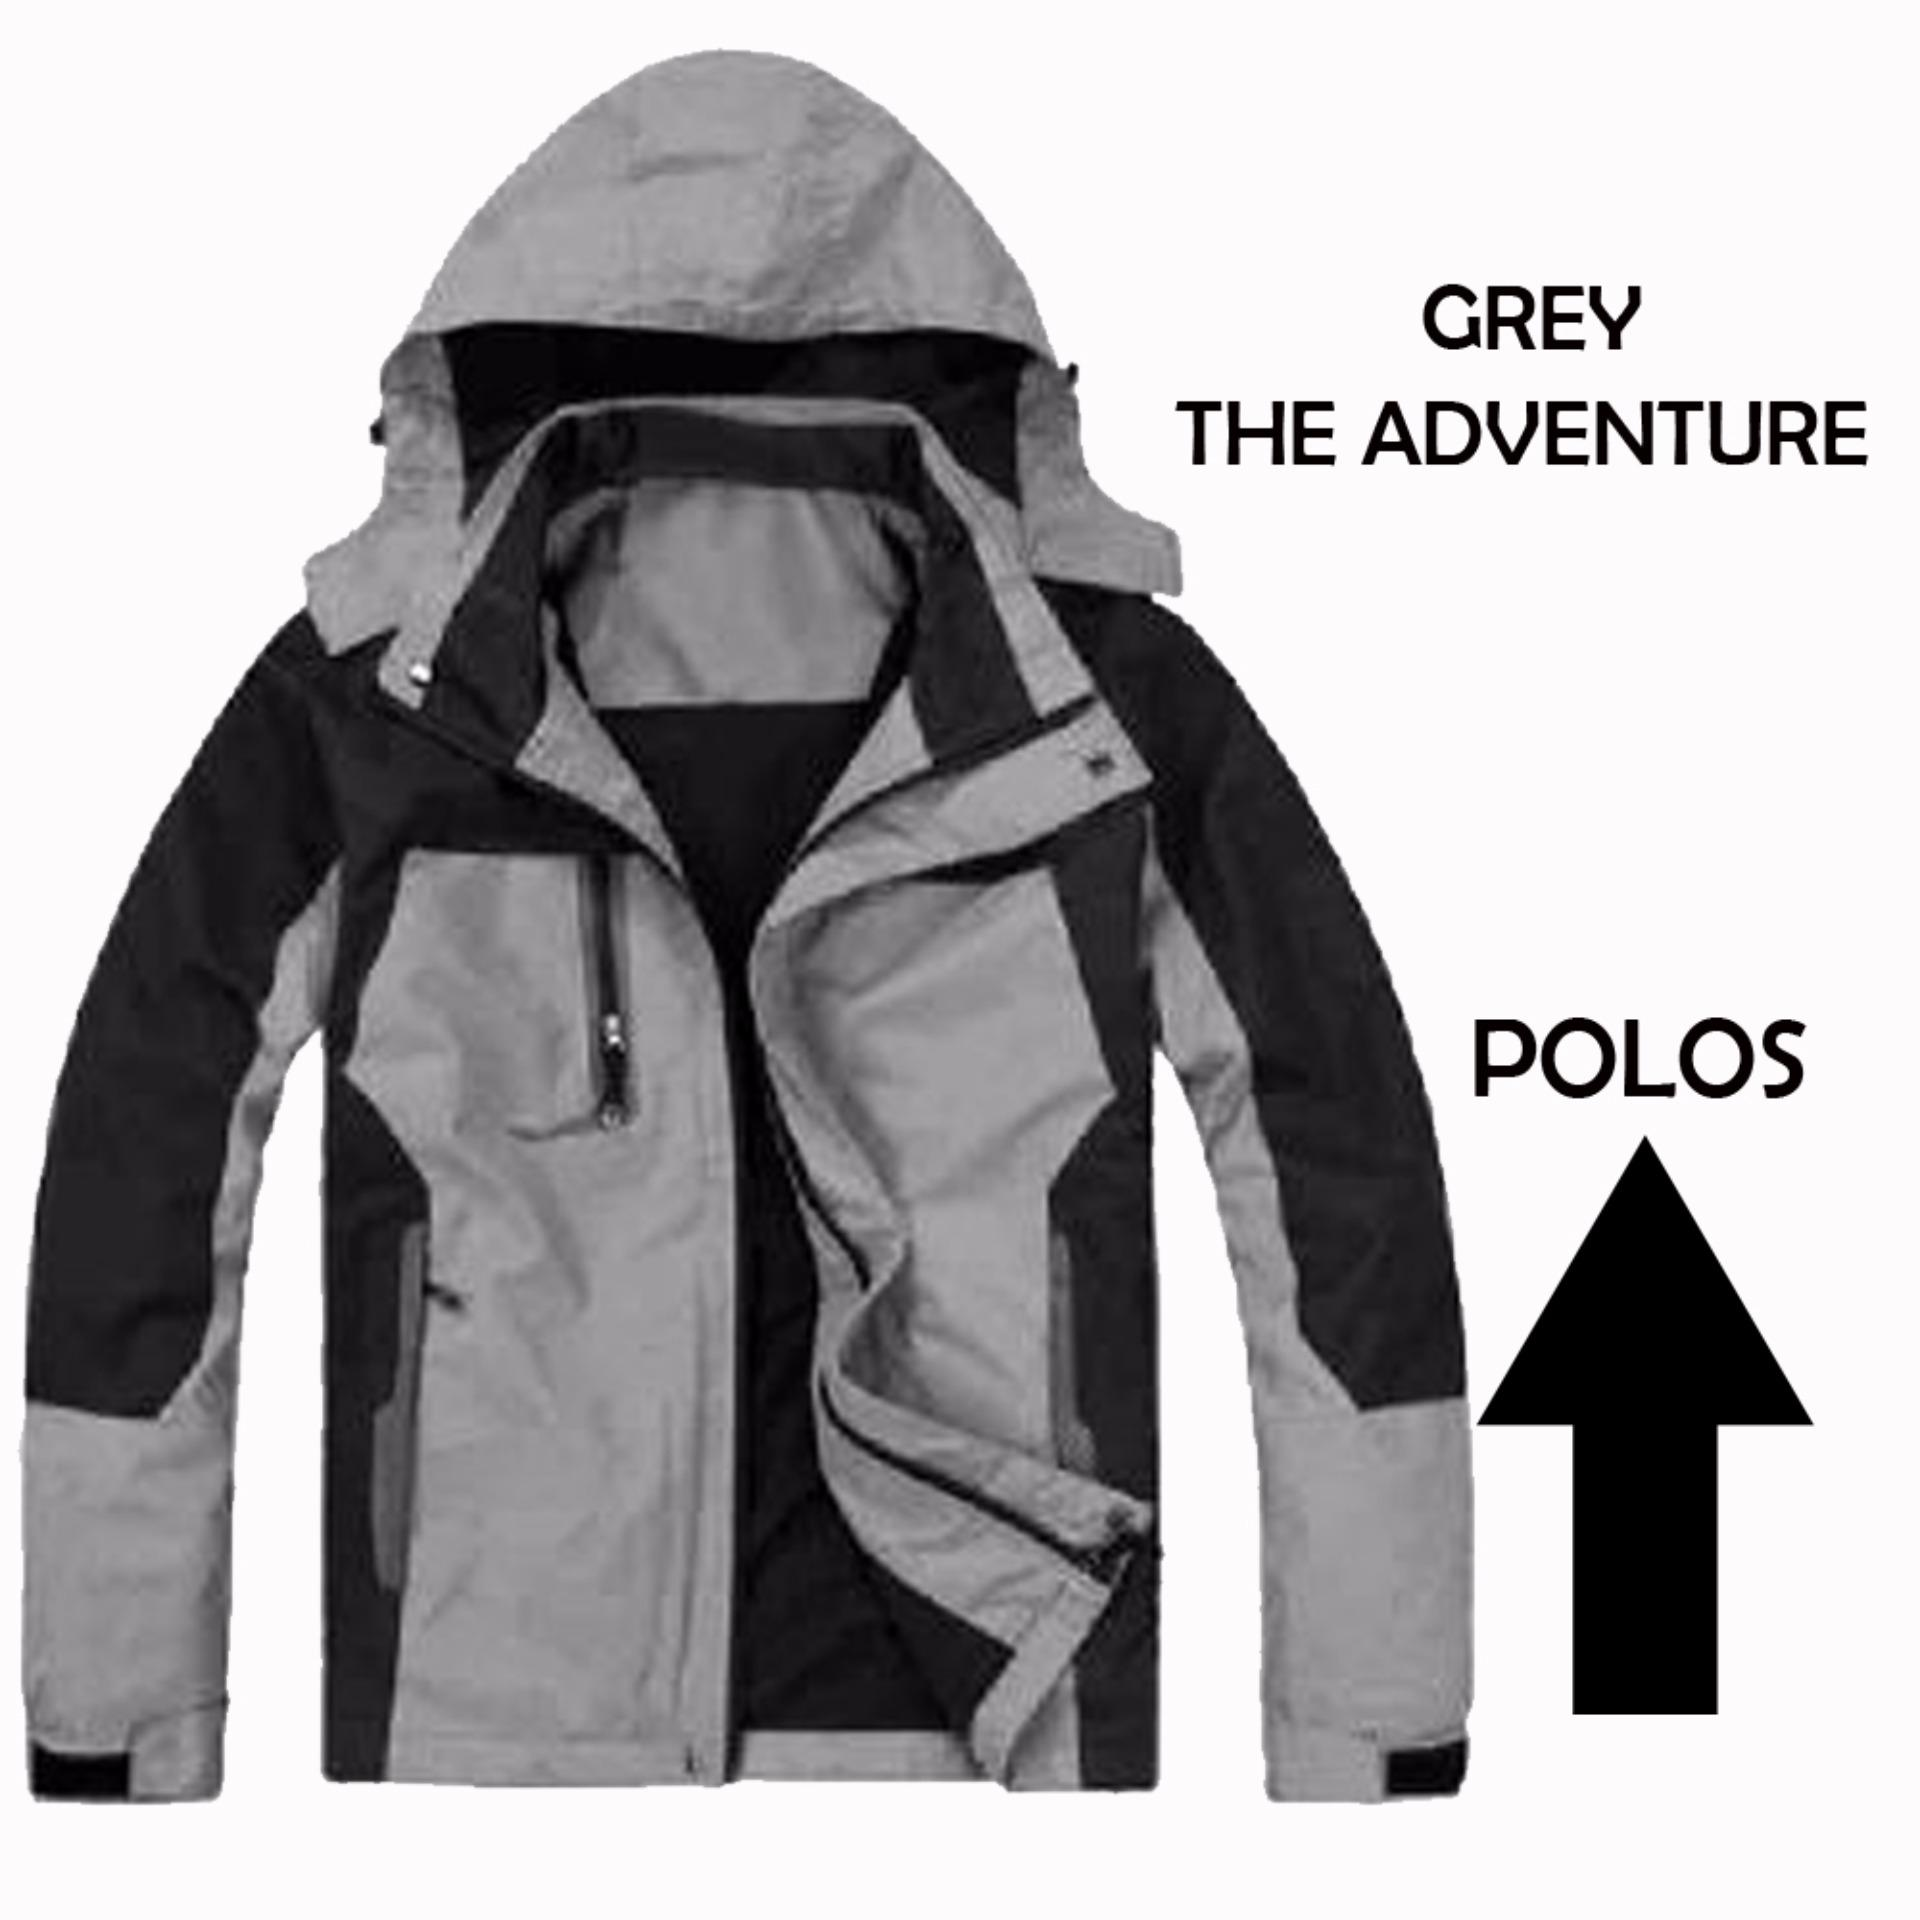 Jual Jaket Parasut Waterproof The Adventure Grey Polos Murah Indonesia